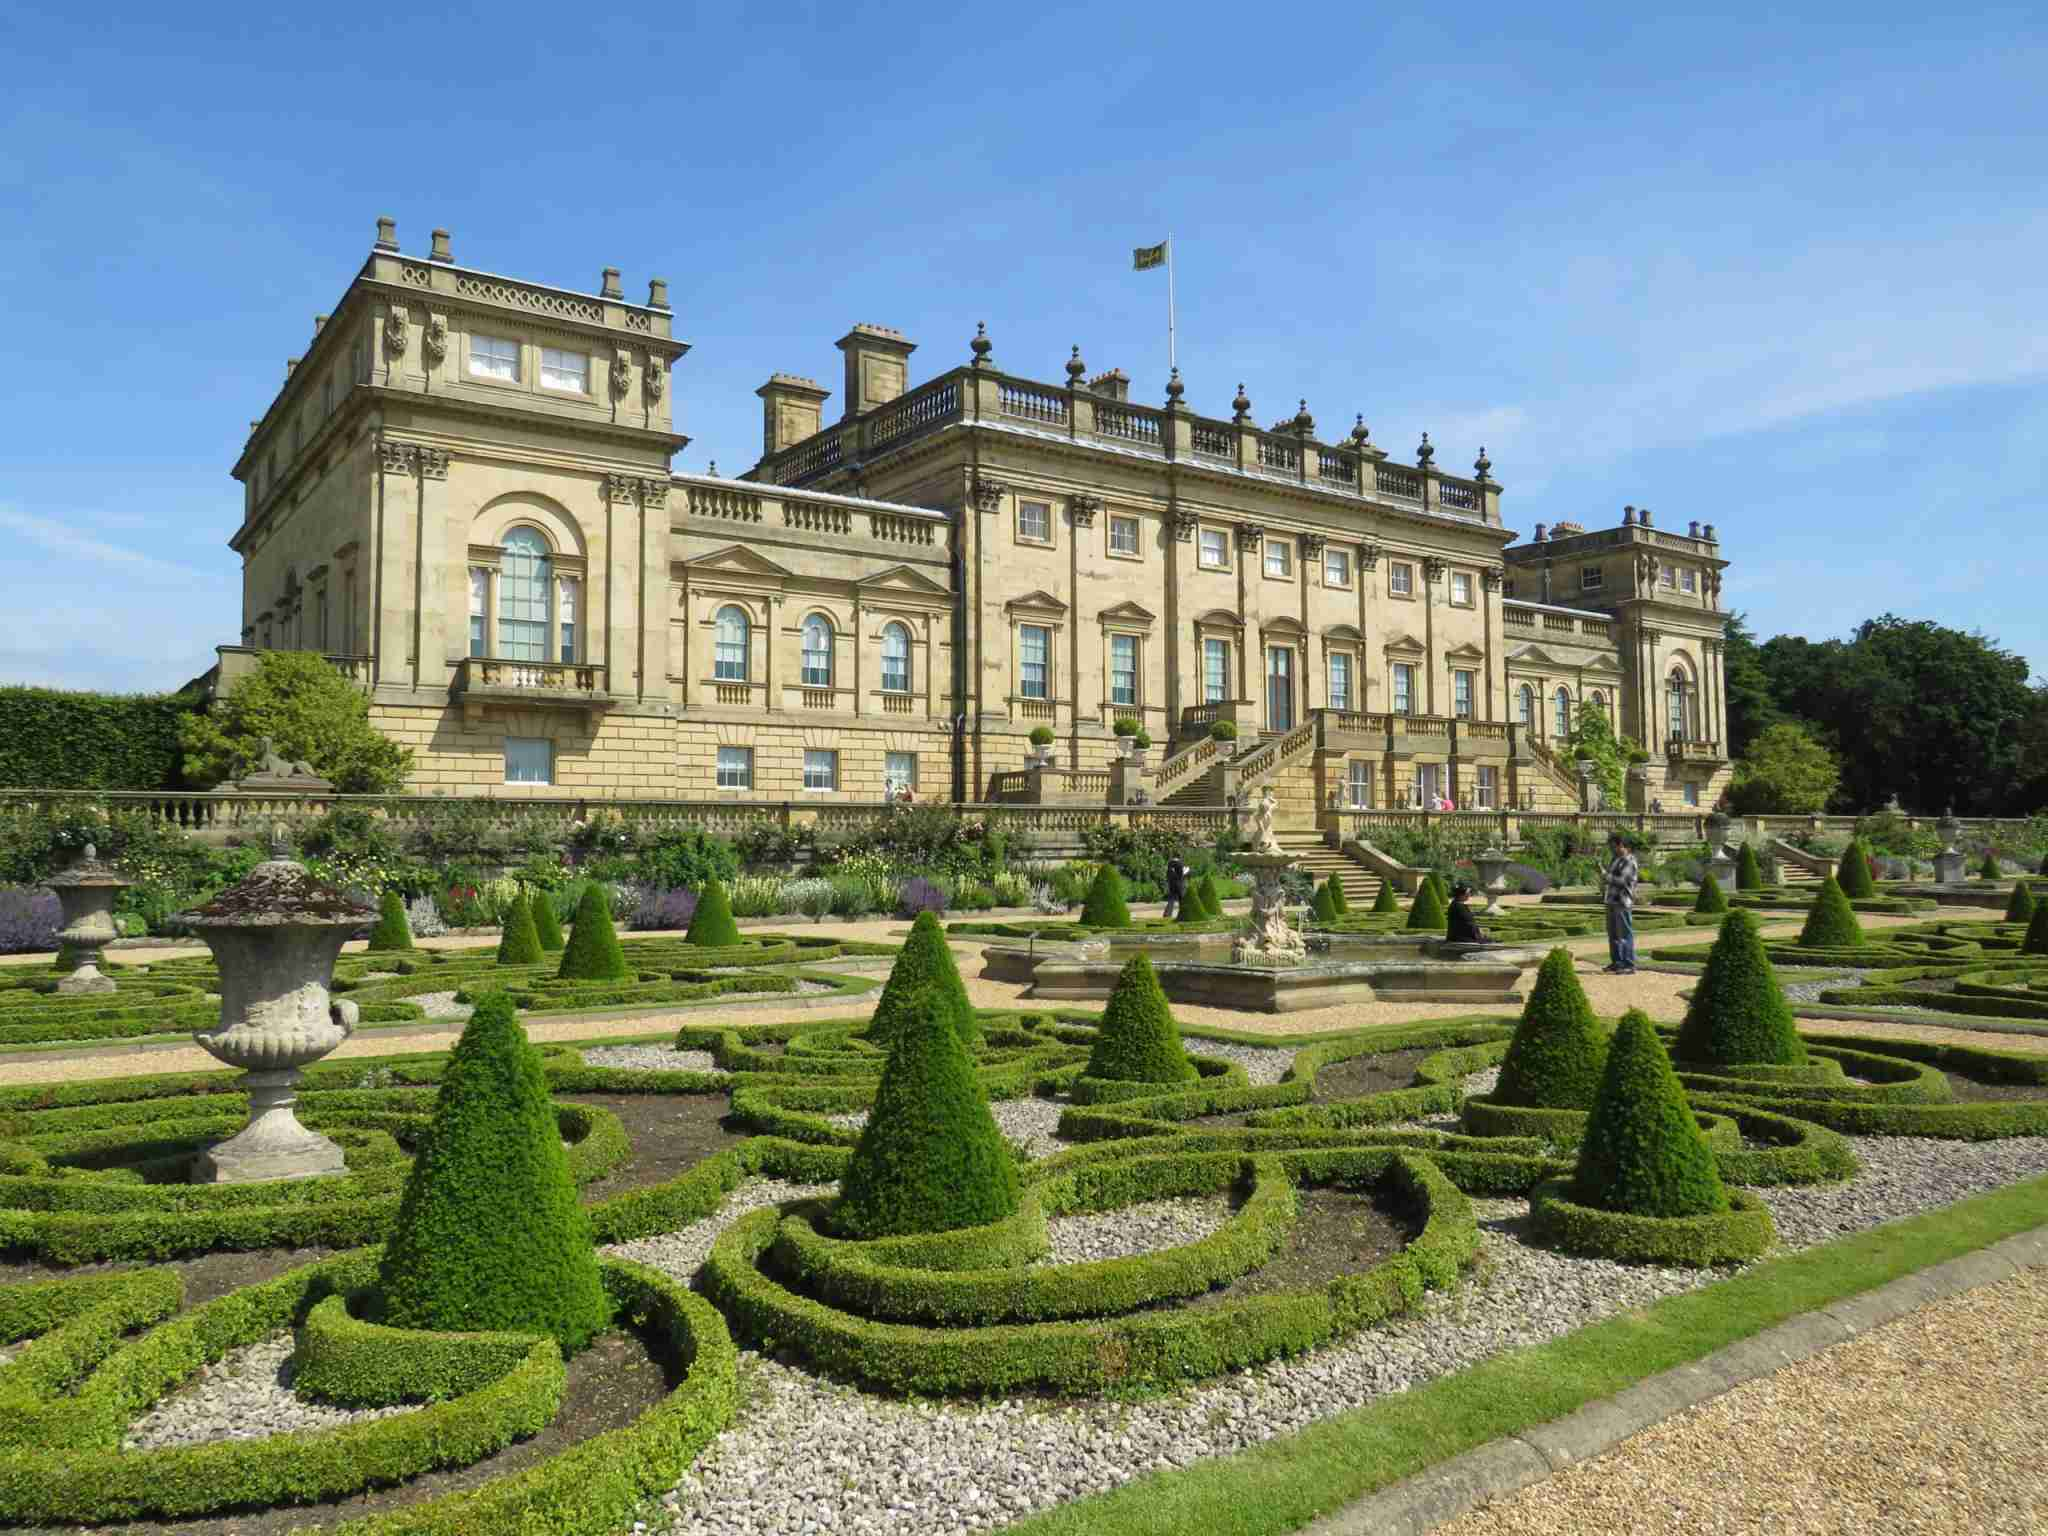 Harewood House (Photo by Russell Webb / Shutterstock)